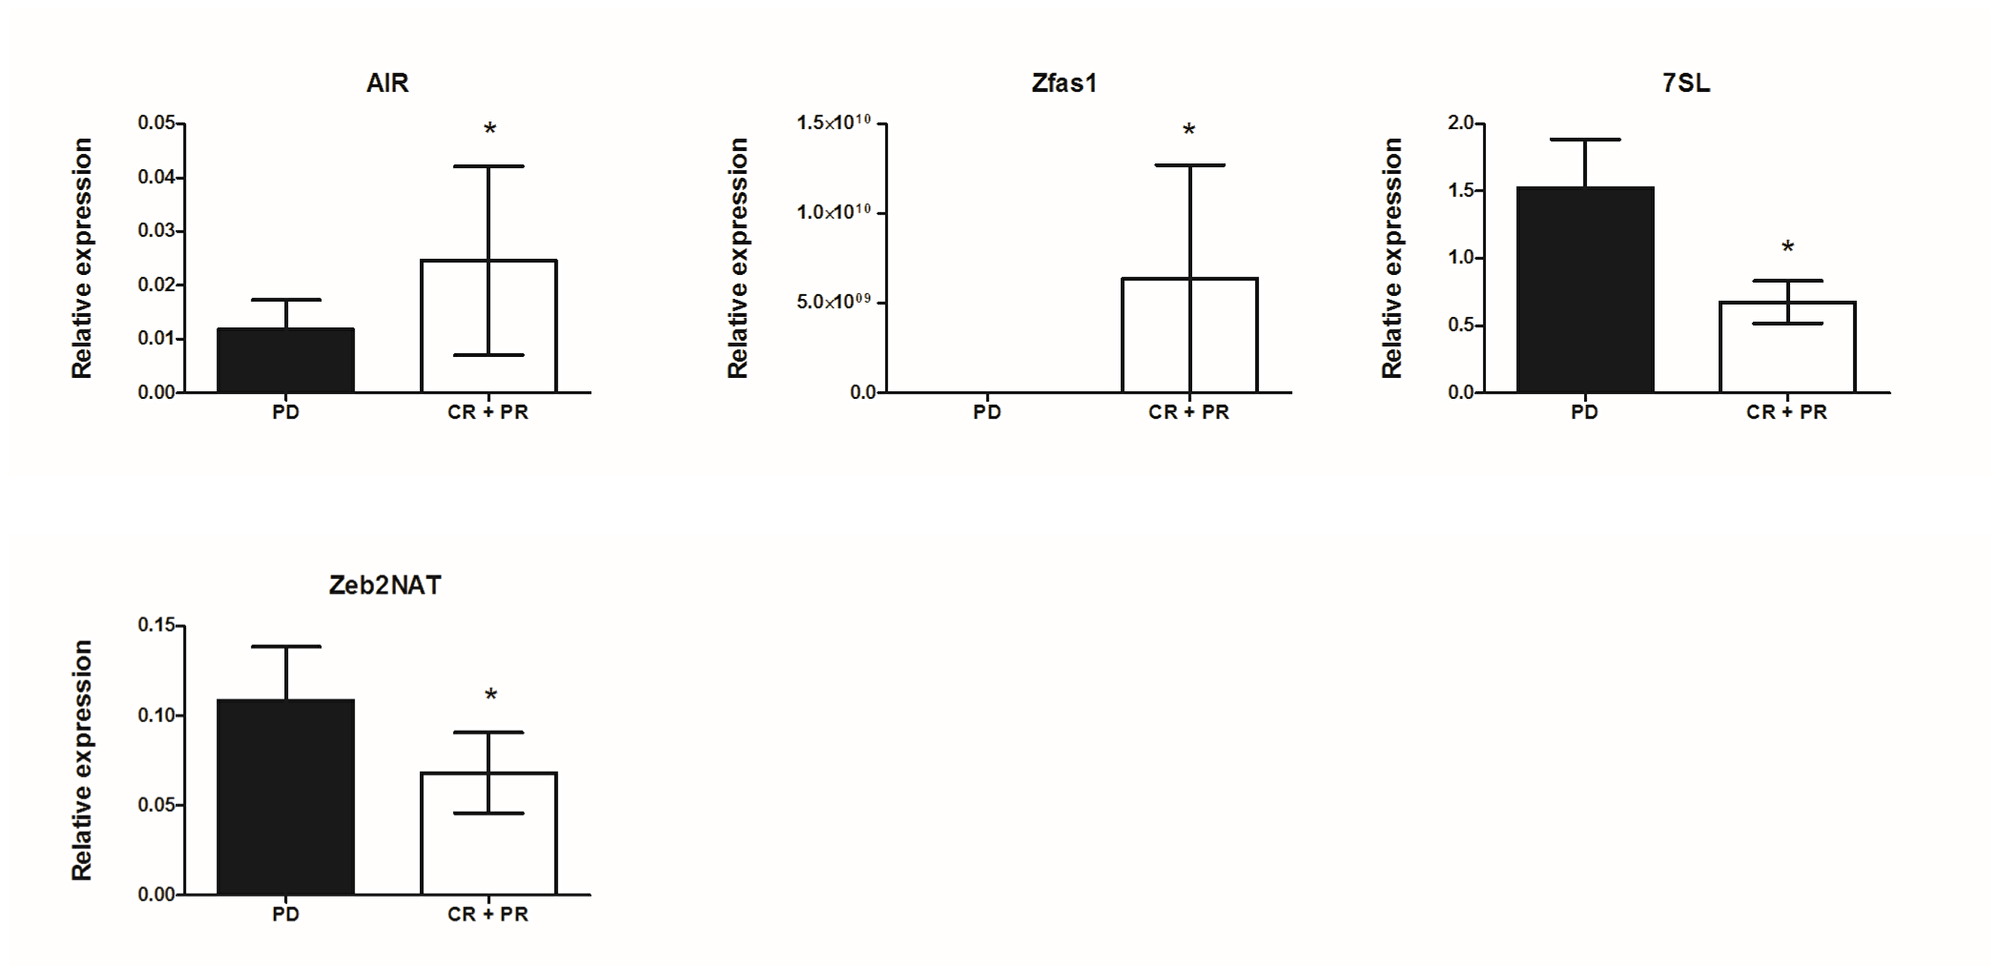 Correlation of lncRNA expression with response to vemurafenib treatment in metastatic melanoma patients; mean expression with standard error (SEM); *p < 0.05, **p <0.01.